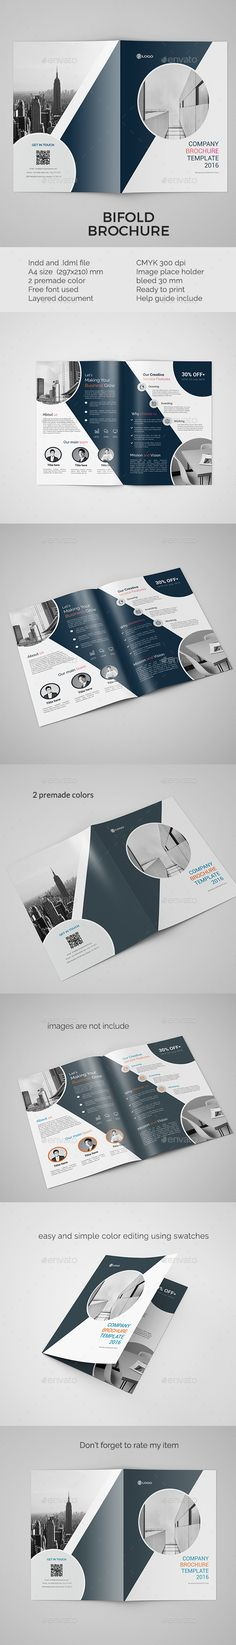 Corporate bifold brochure vol 2 - Corporate Brochure Template InDesign INDD. Download here: http://graphicriver.net/item/corporate-bifold-brochure-vol-2/16690442?ref=yinkira